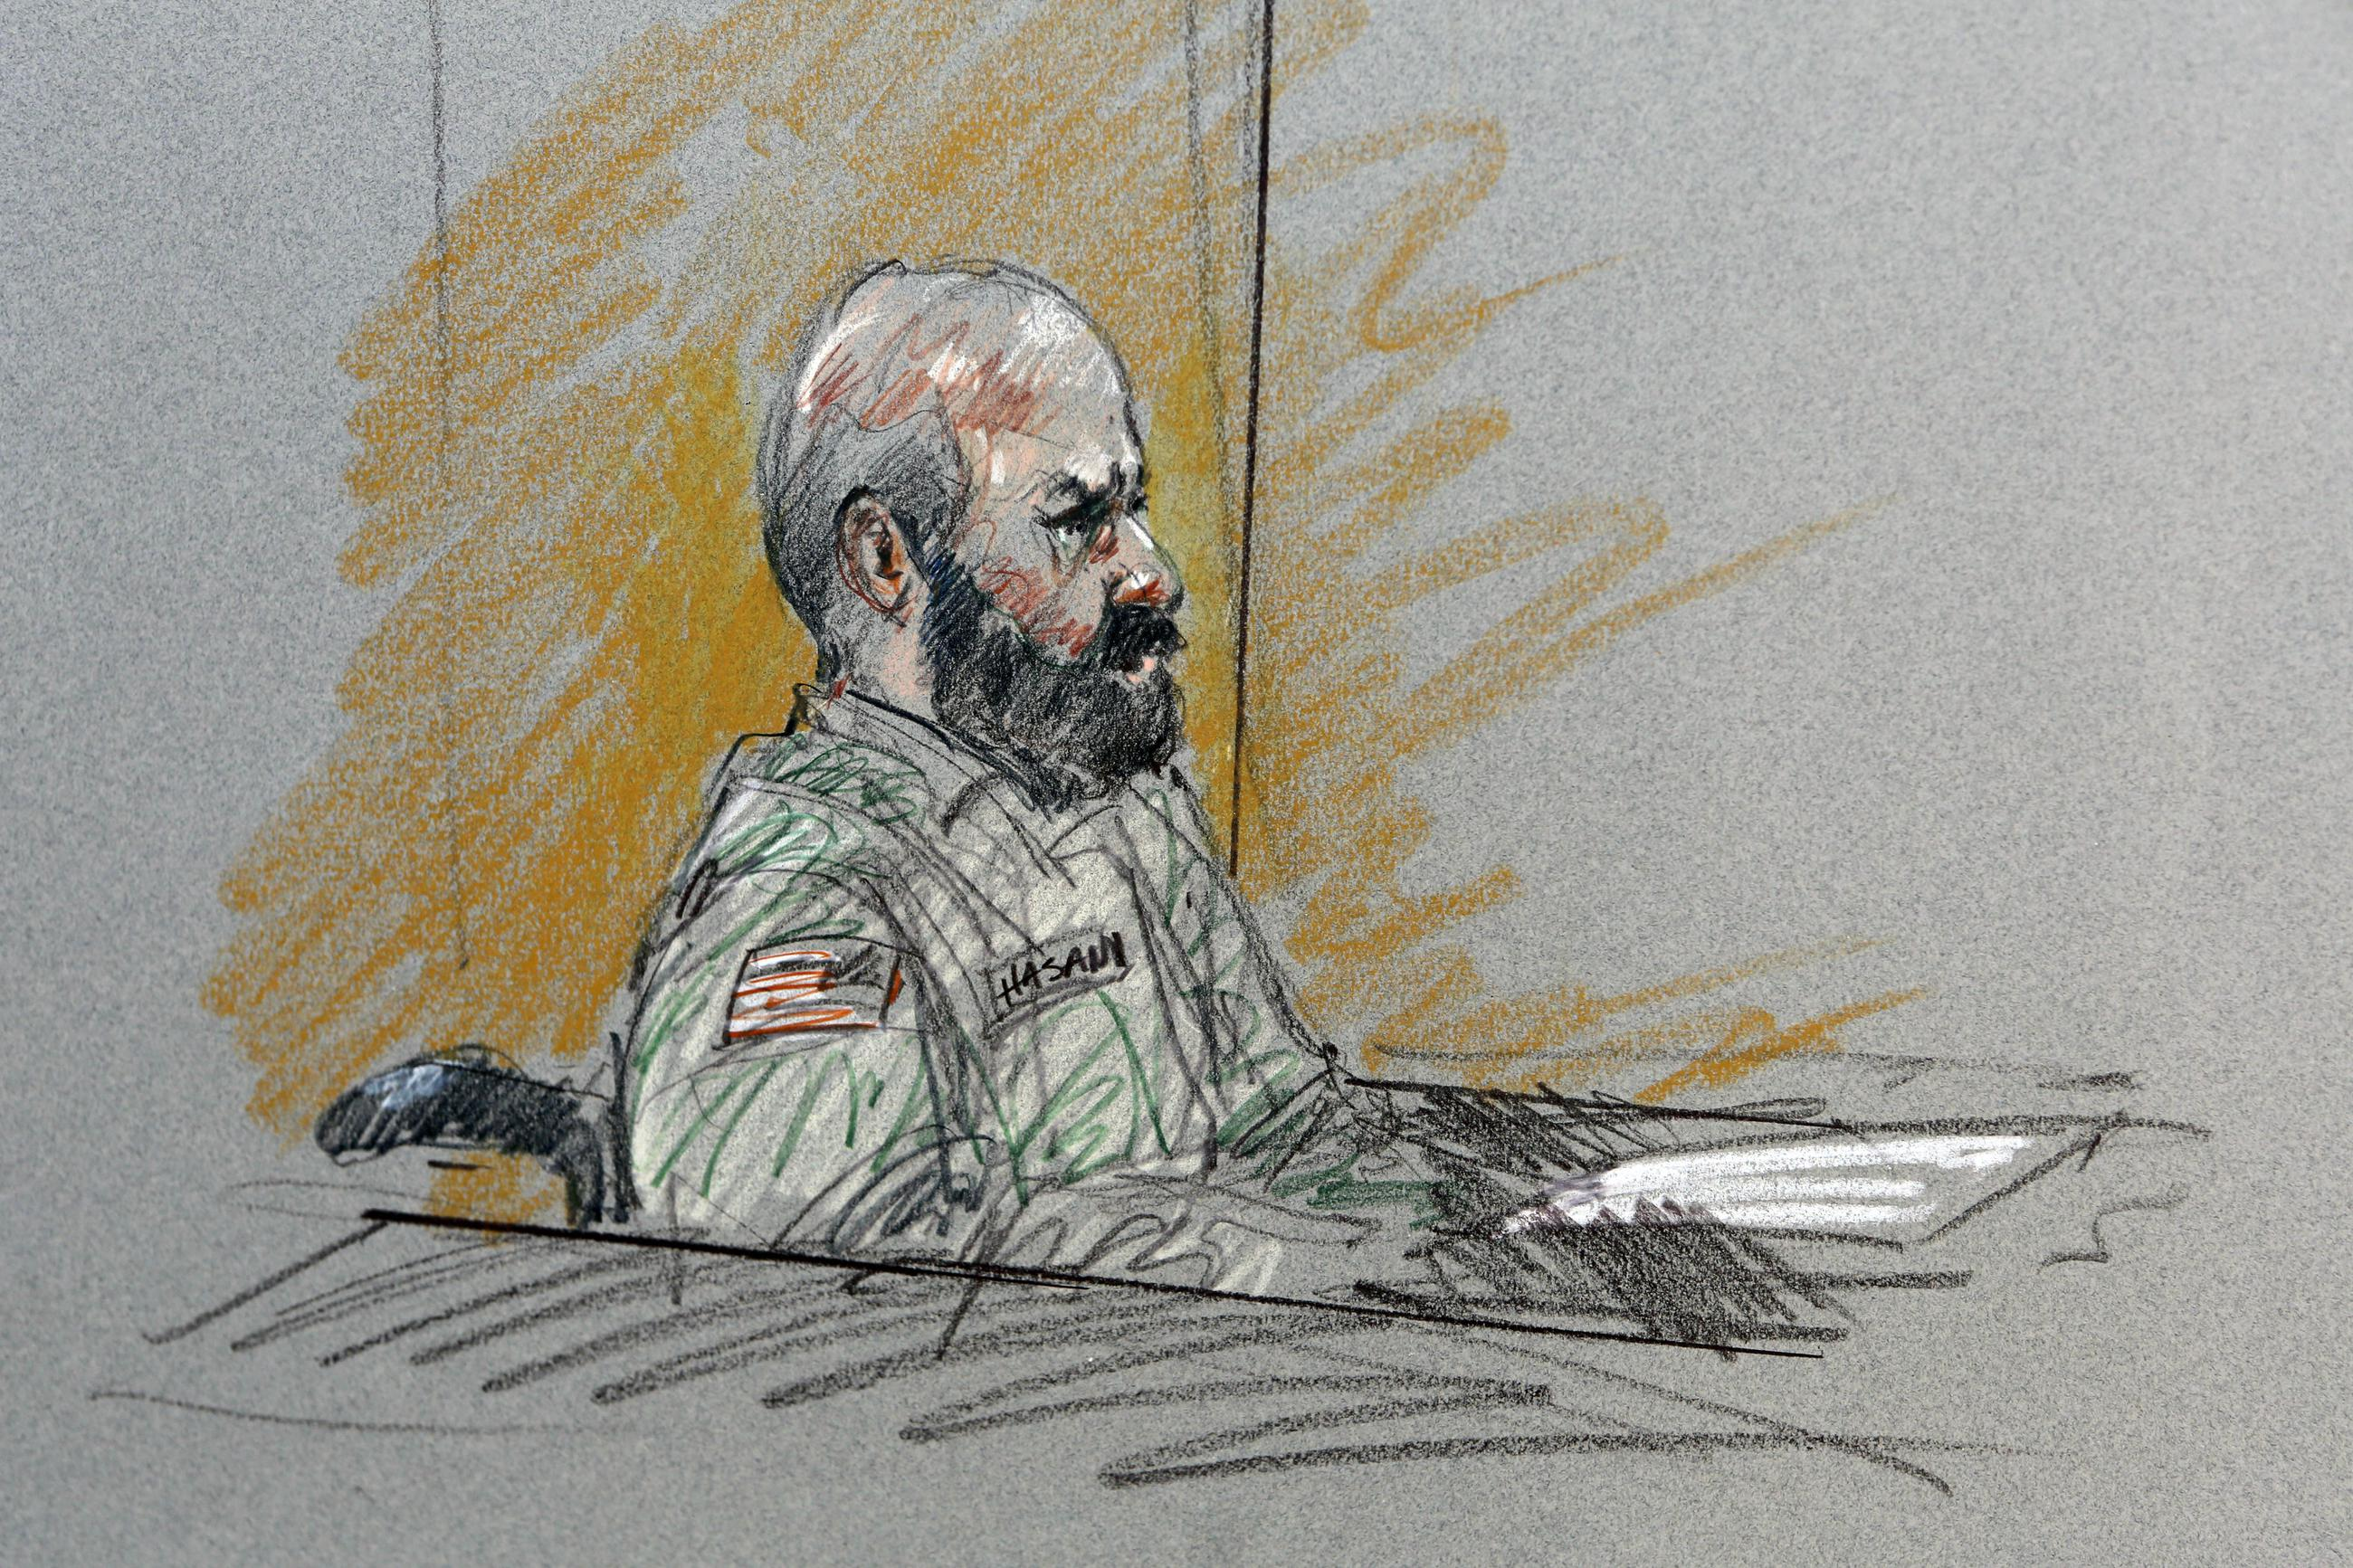 Fort Hood Shooter Gets the Death Penalty He Allegedly Sought